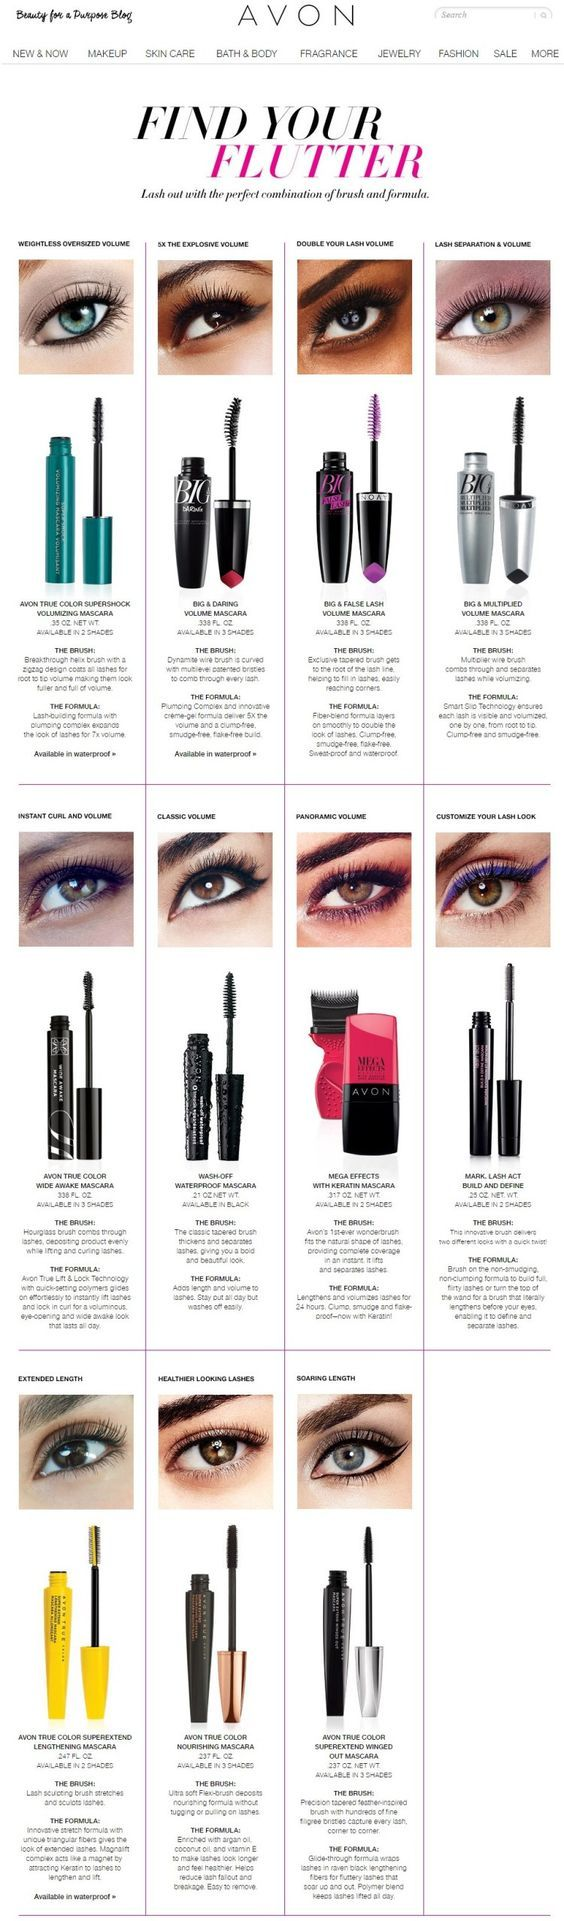 Find you flutter with this handy Avon Mascara guide.. Regularly $7.99 and up shop Avon mascara online at www.youravon.com/my1724 or by clicking the pin to take you to the sales.